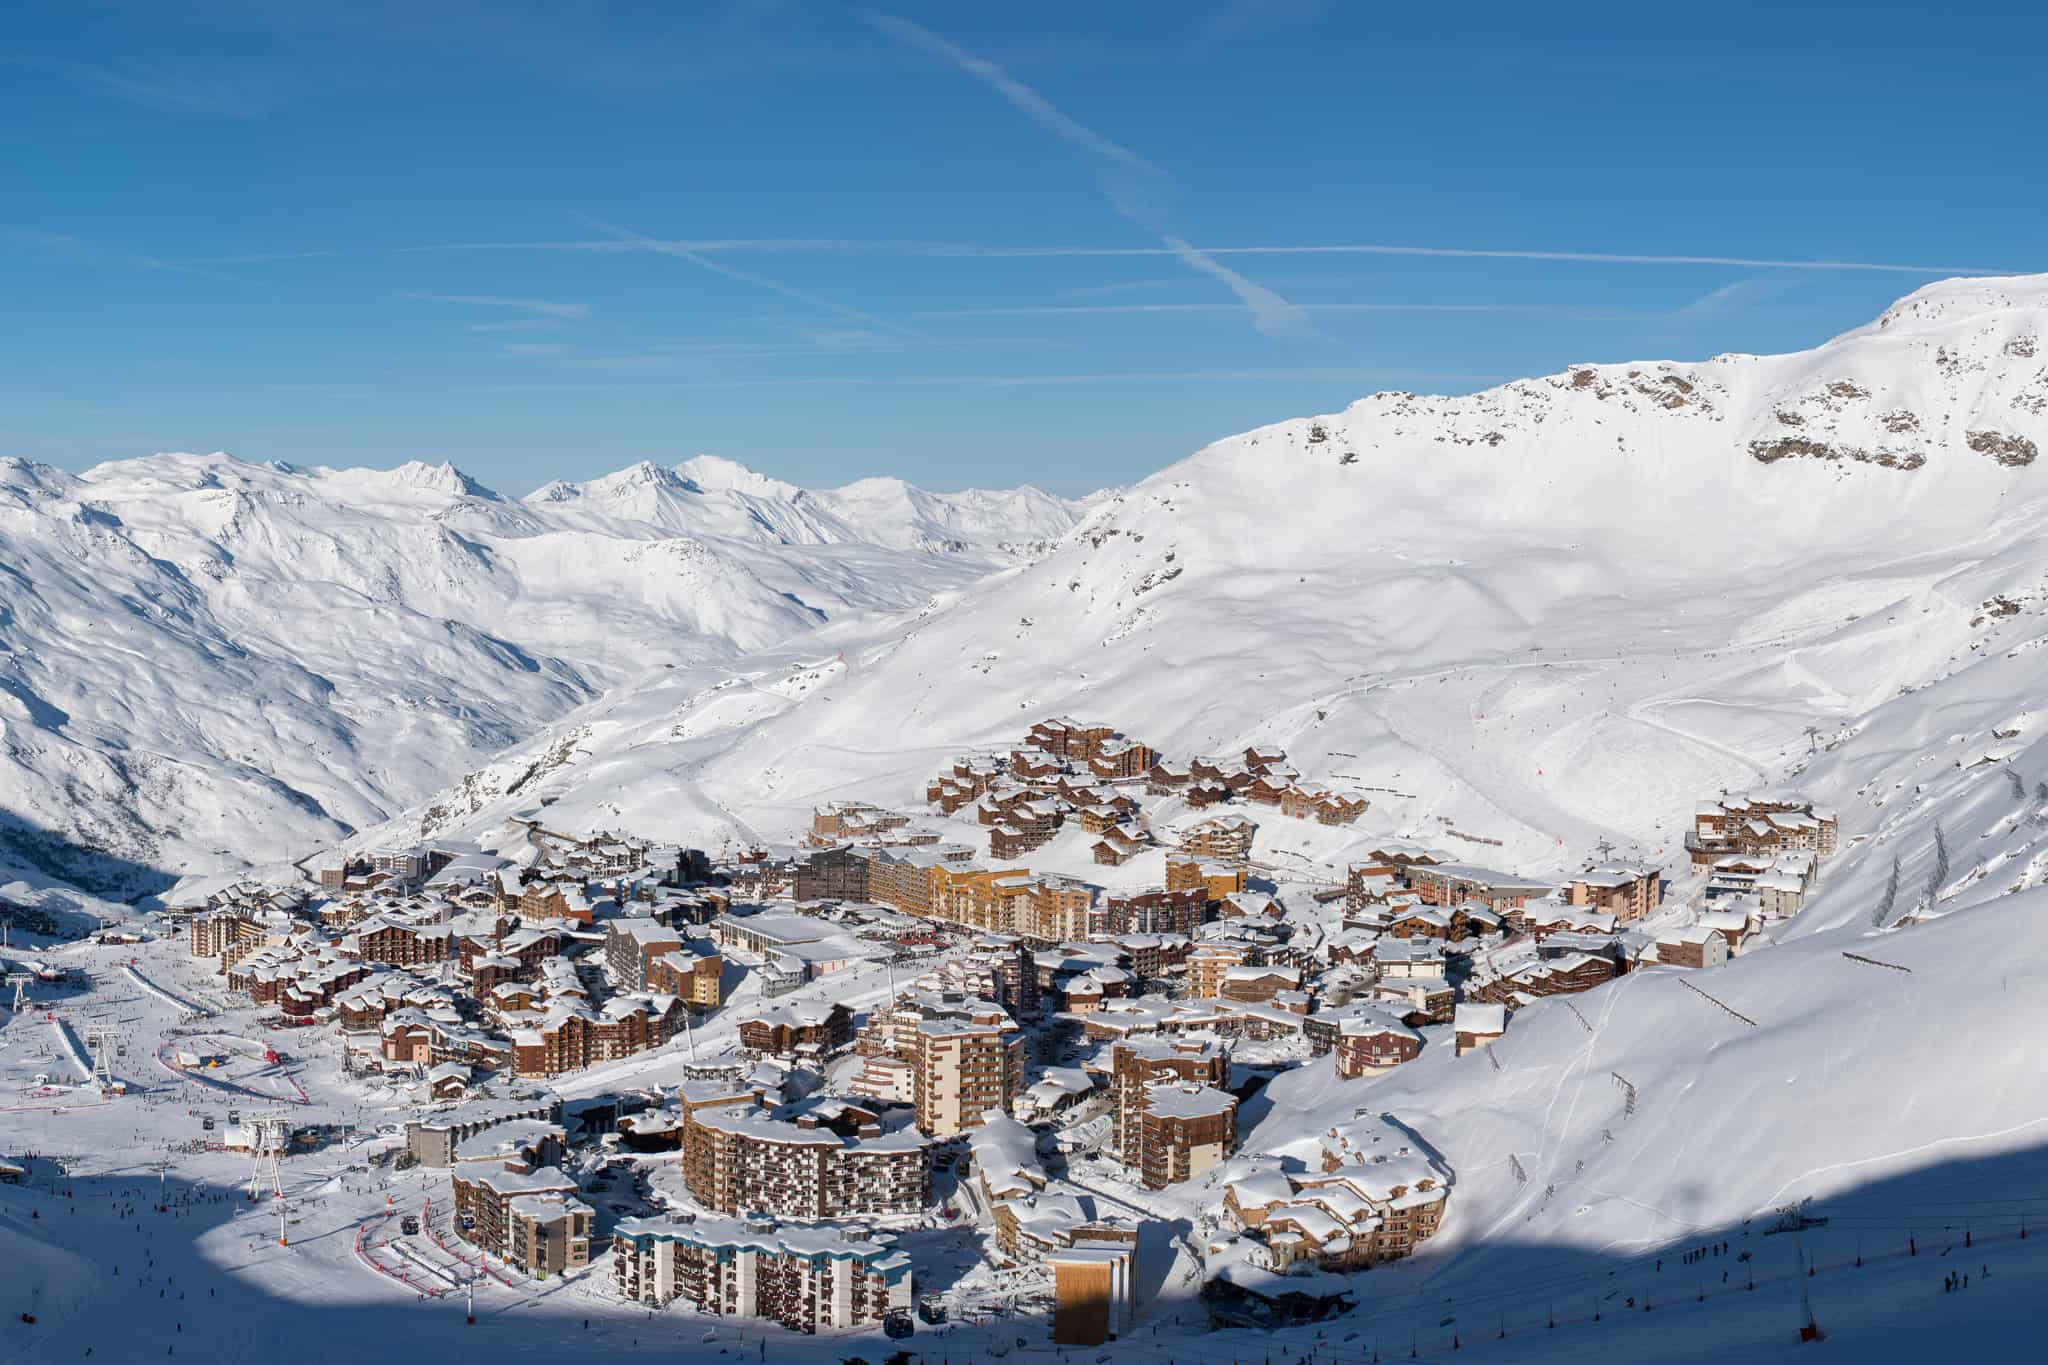 Station domaine skiable Val Thorens